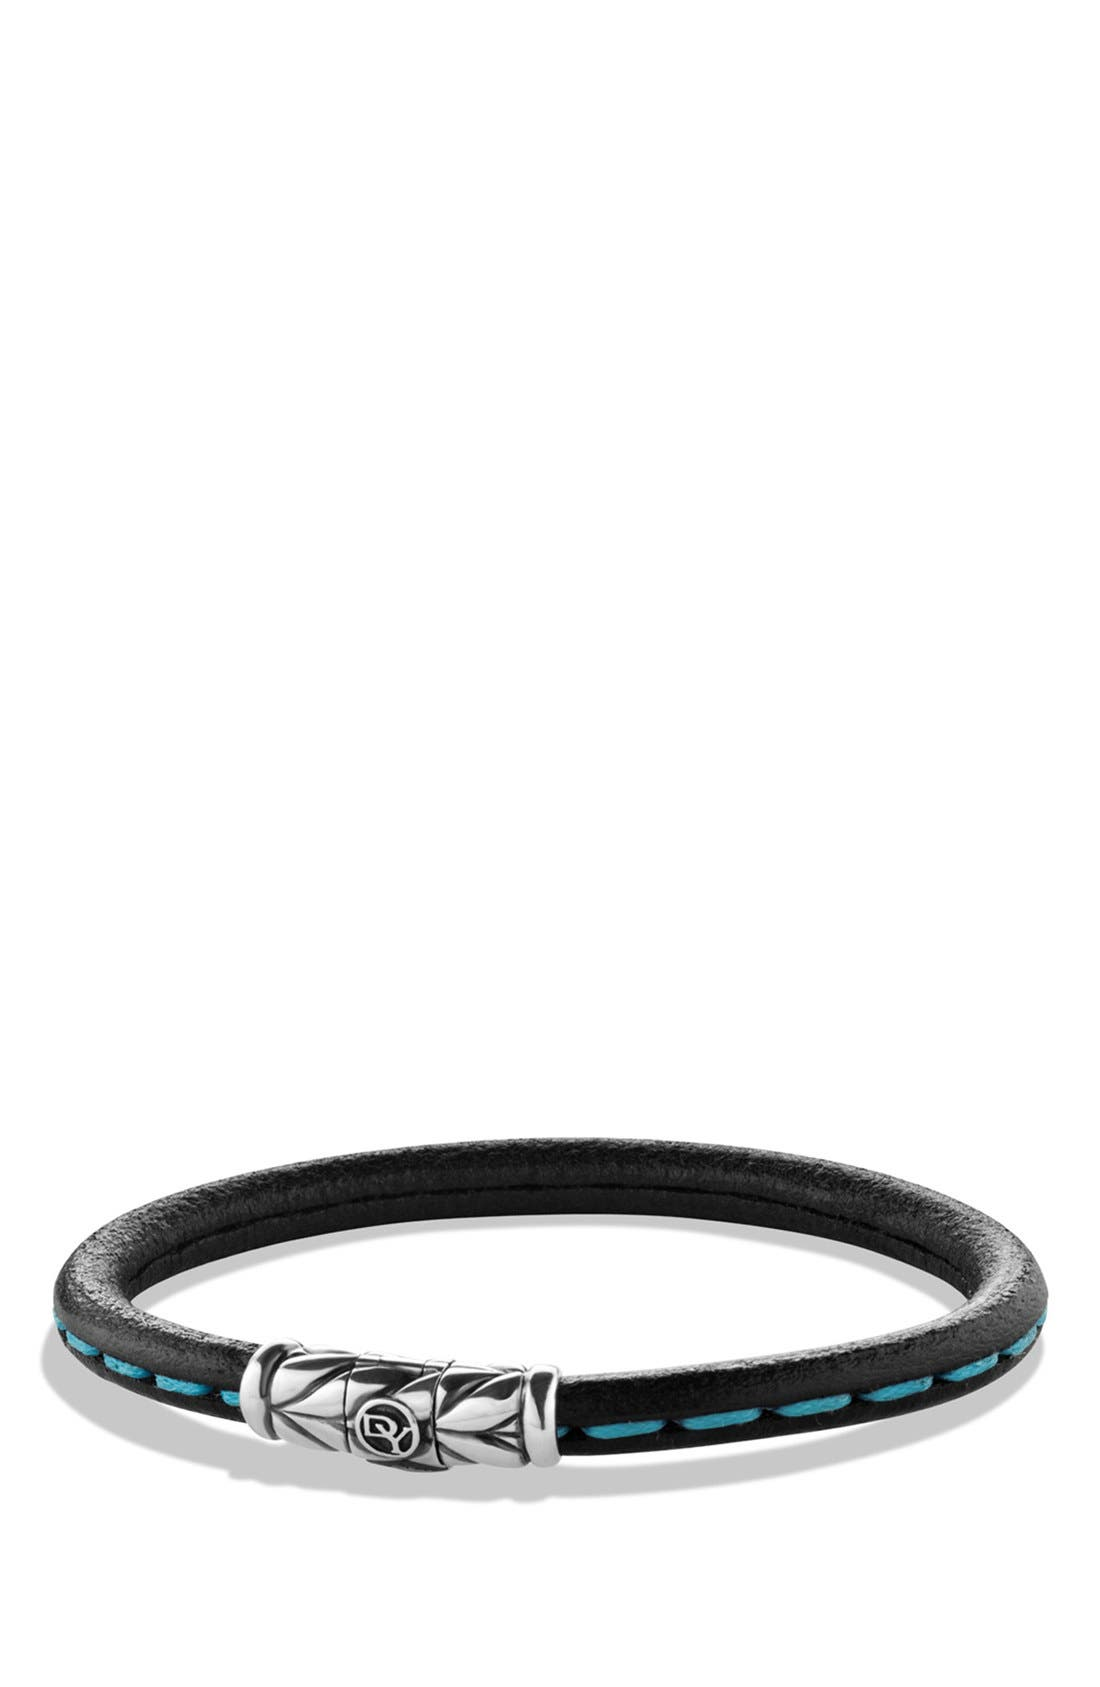 Alternate Image 1 Selected - David Yurman 'Chevron' Leather Bracelet